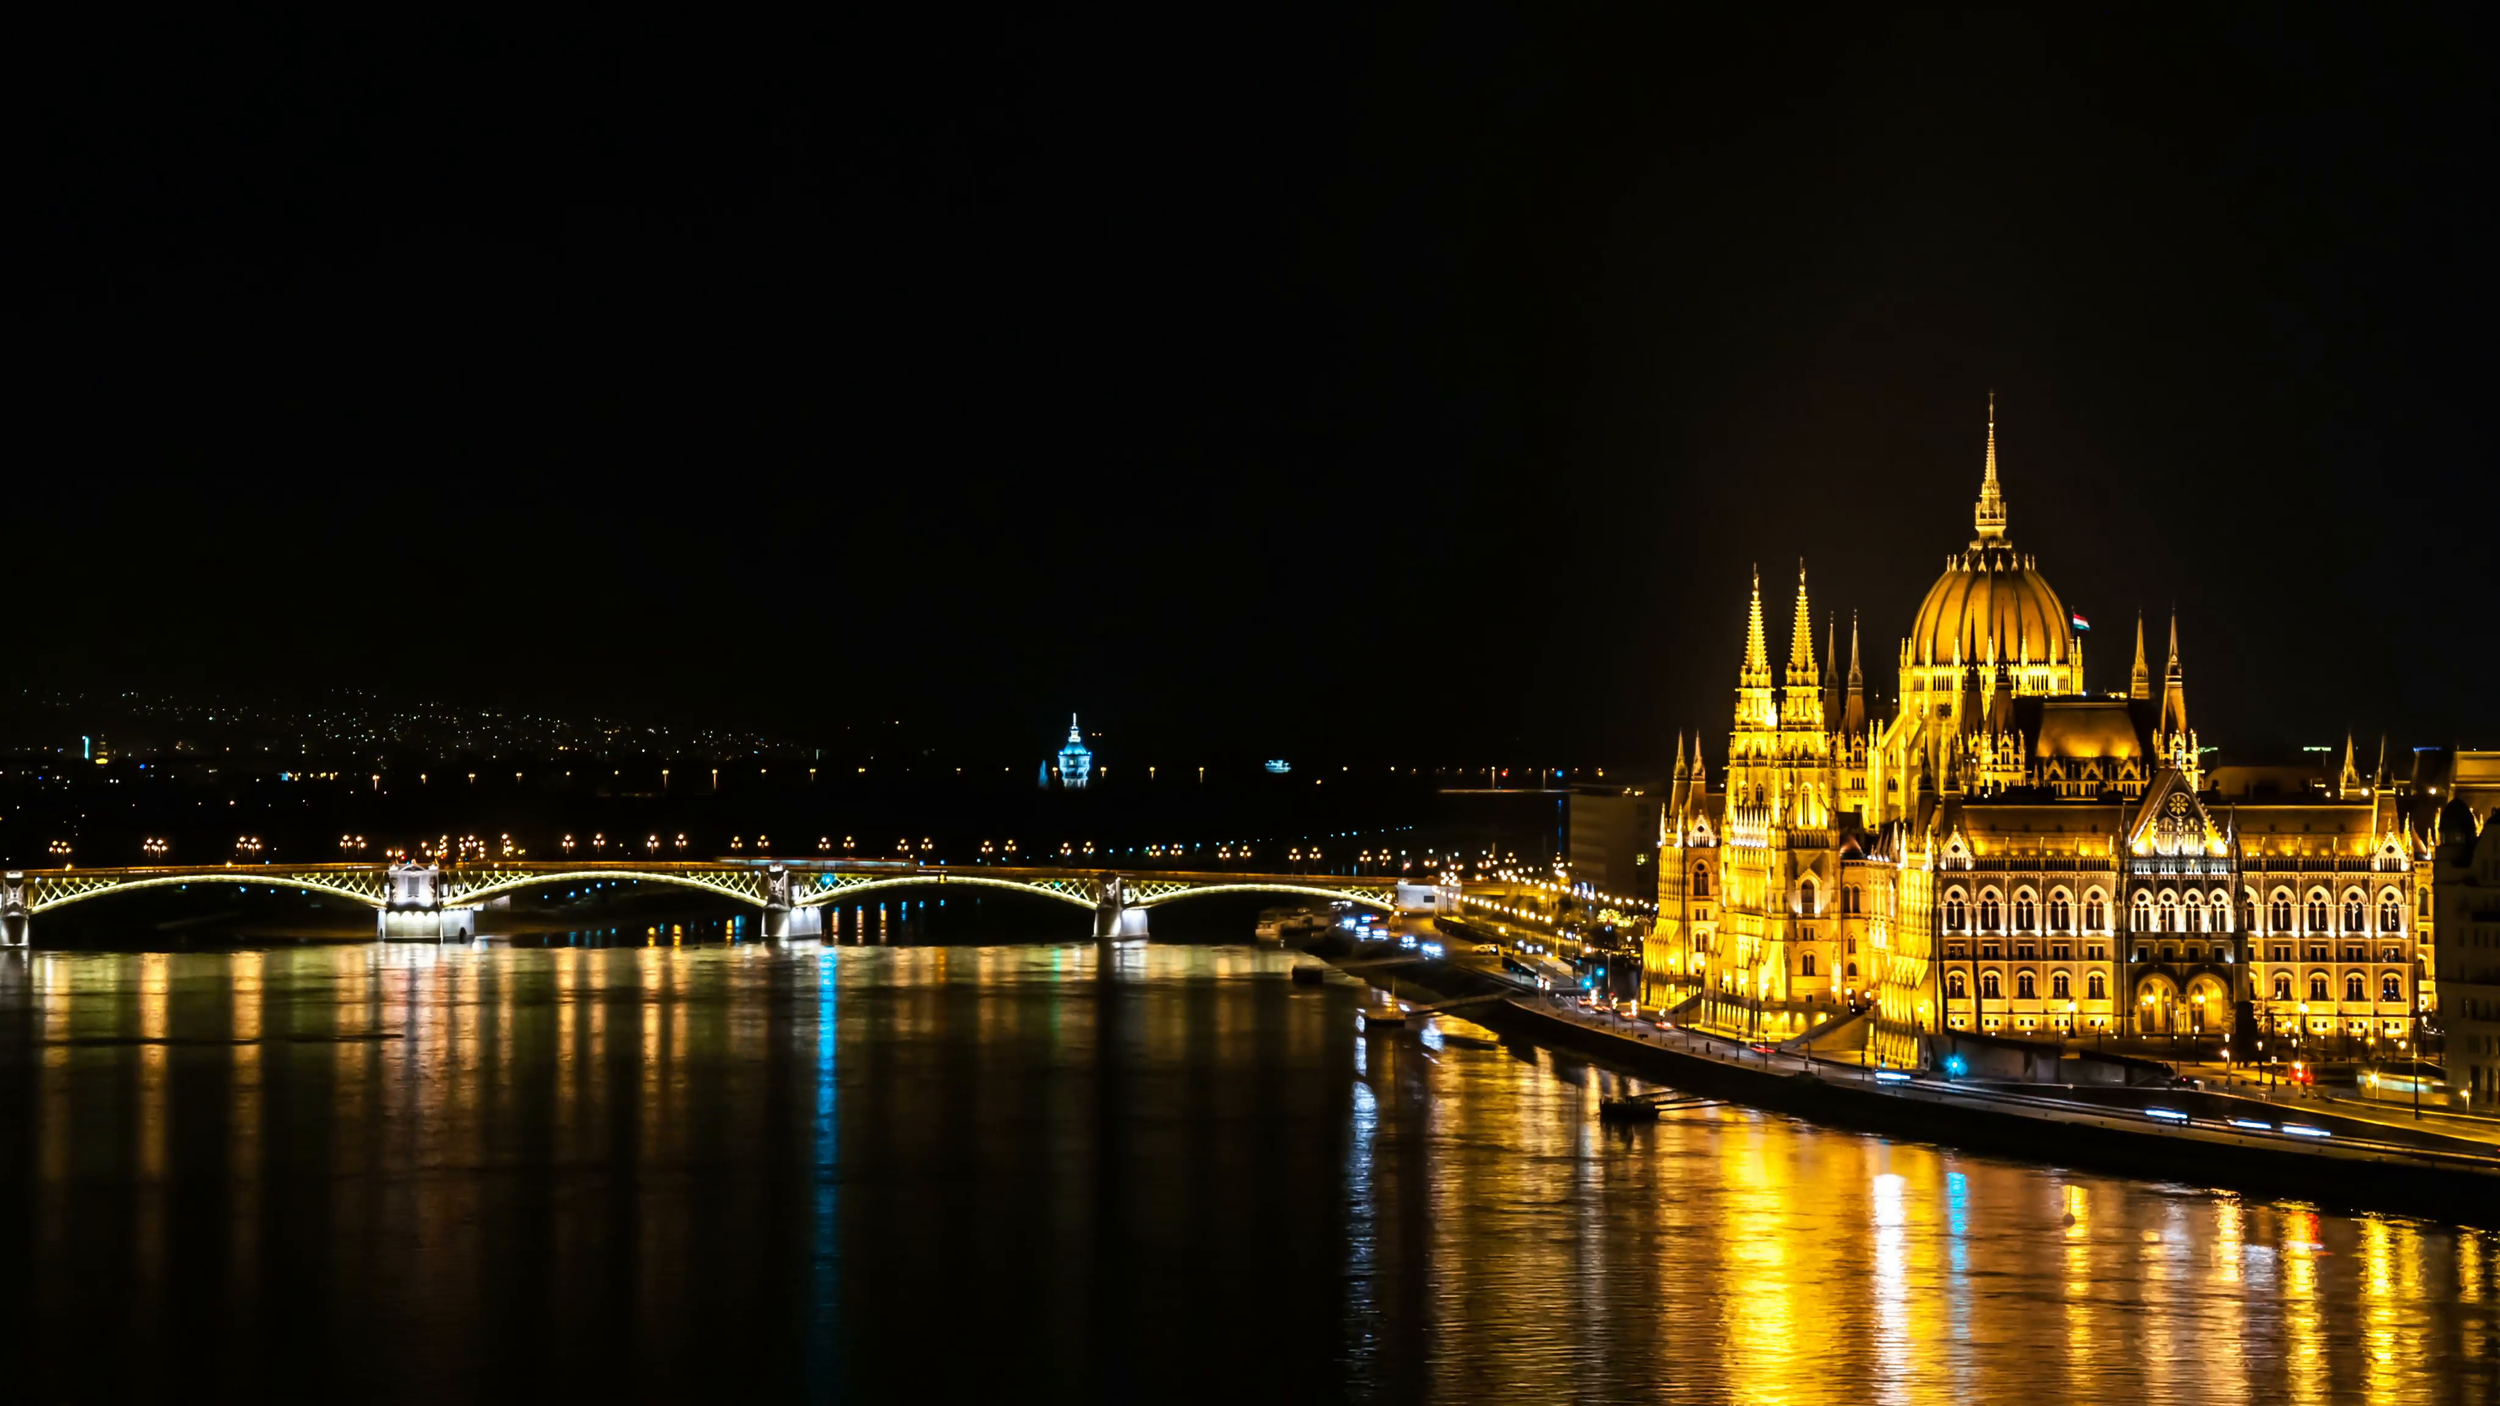 The Chain Bridge, Danube & Parliament Building